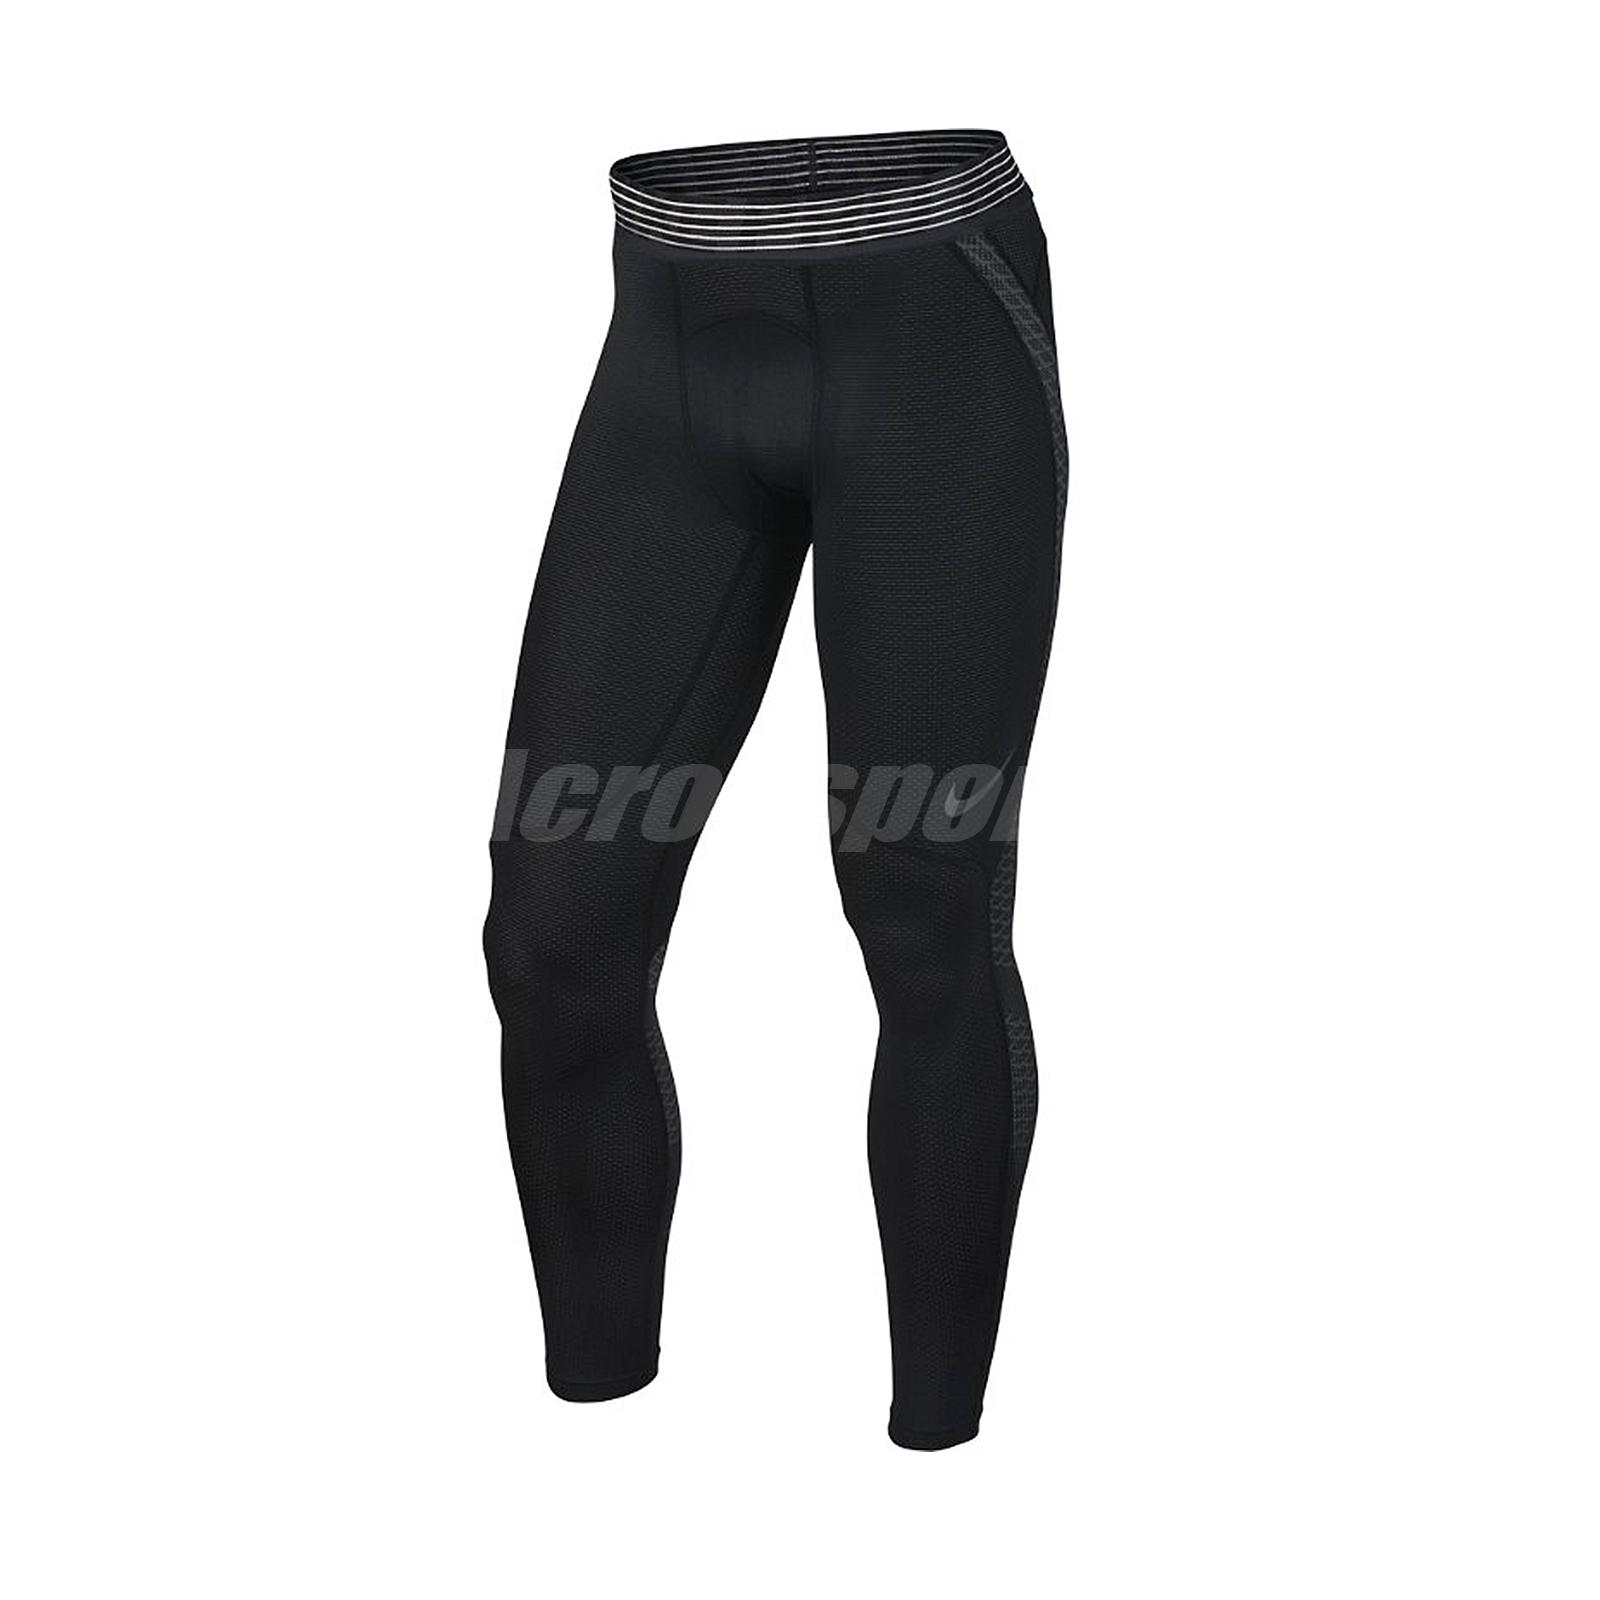 97689a4d2141a Nike Men Pro Hypercool Tight Leggings Black Training Sport Runnung 828162- 010